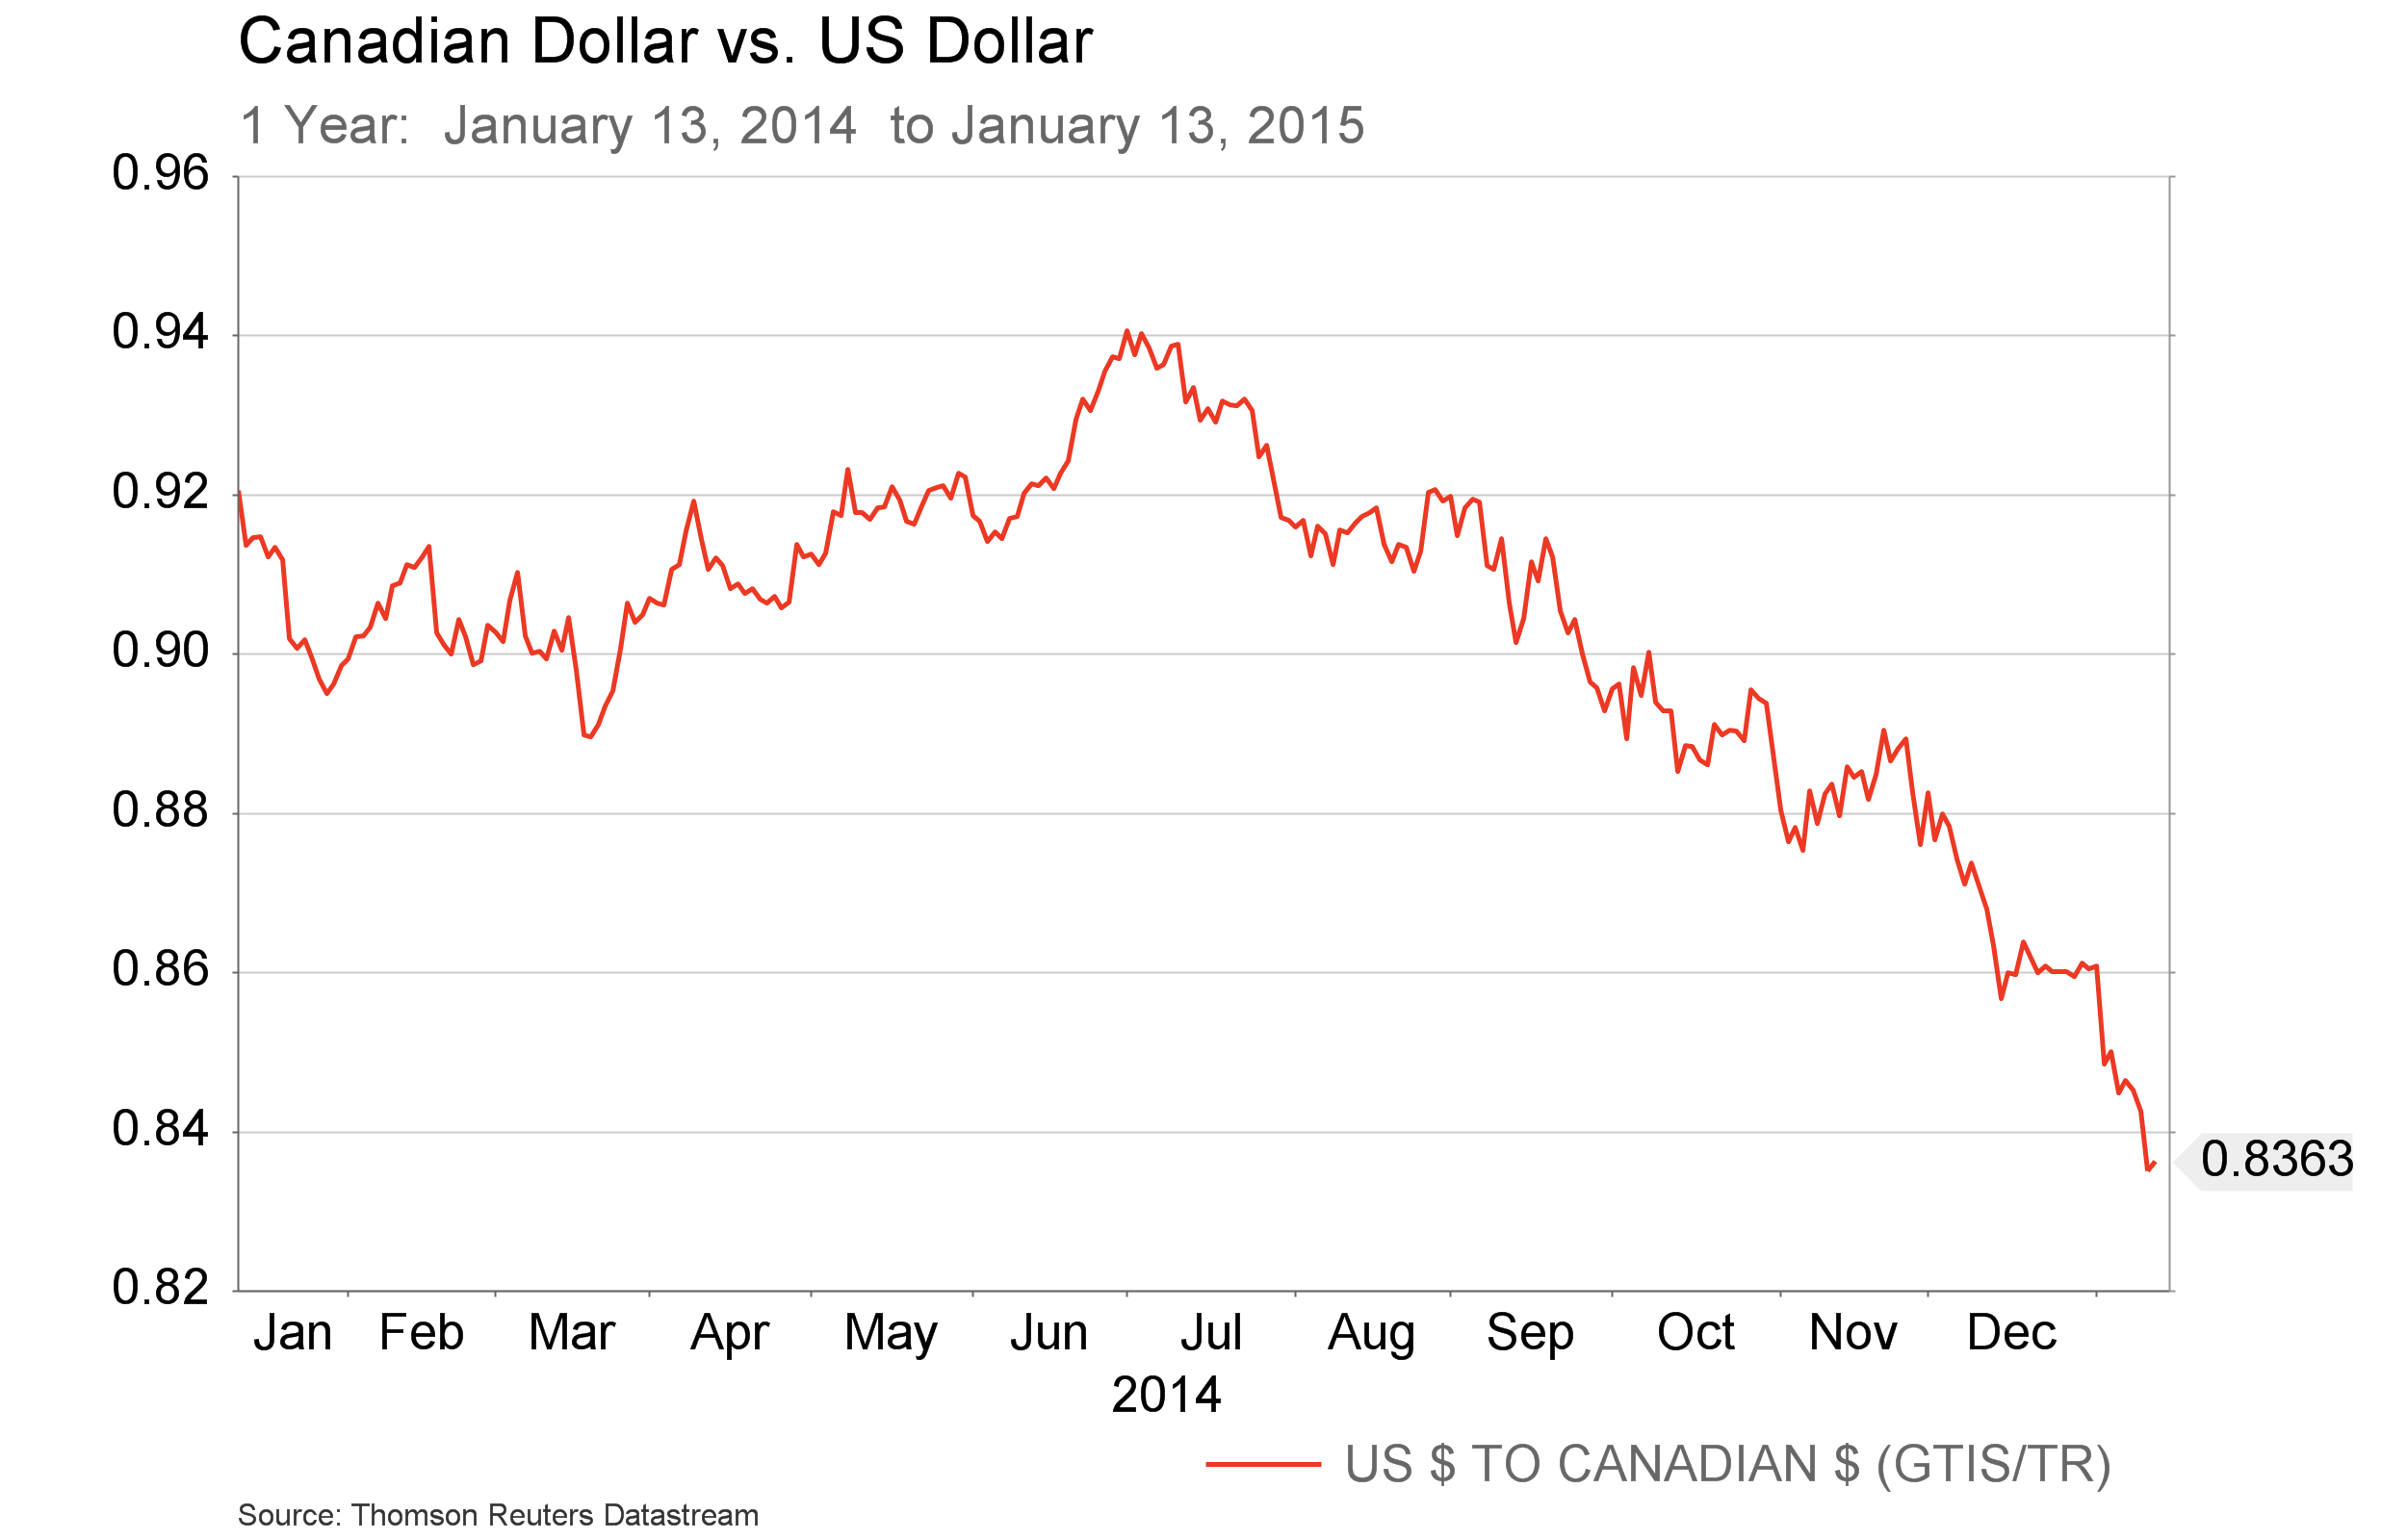 Canadian Dollar Jan 14